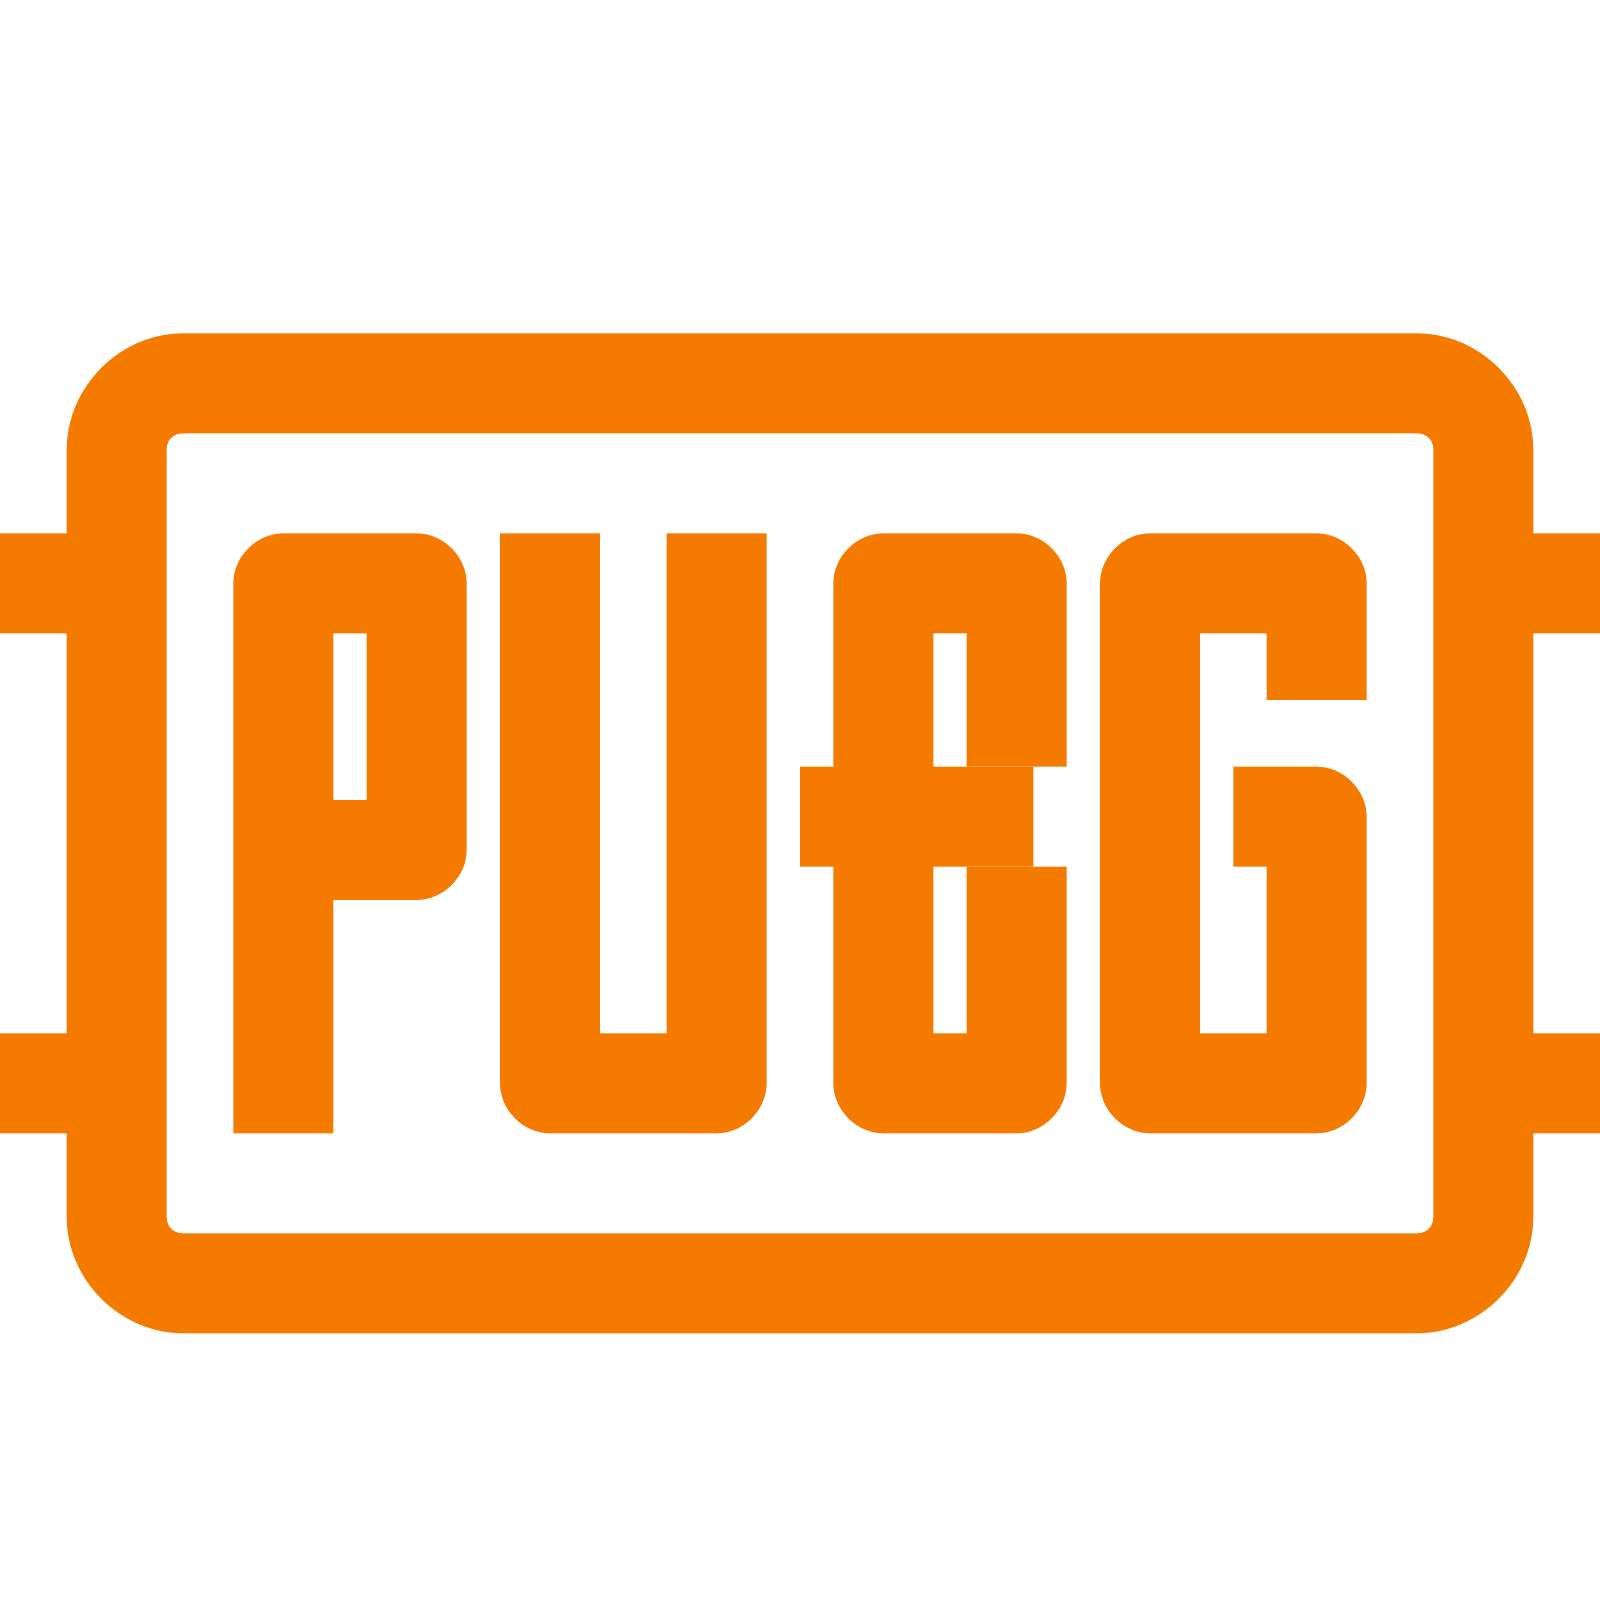 pubglogo icon png